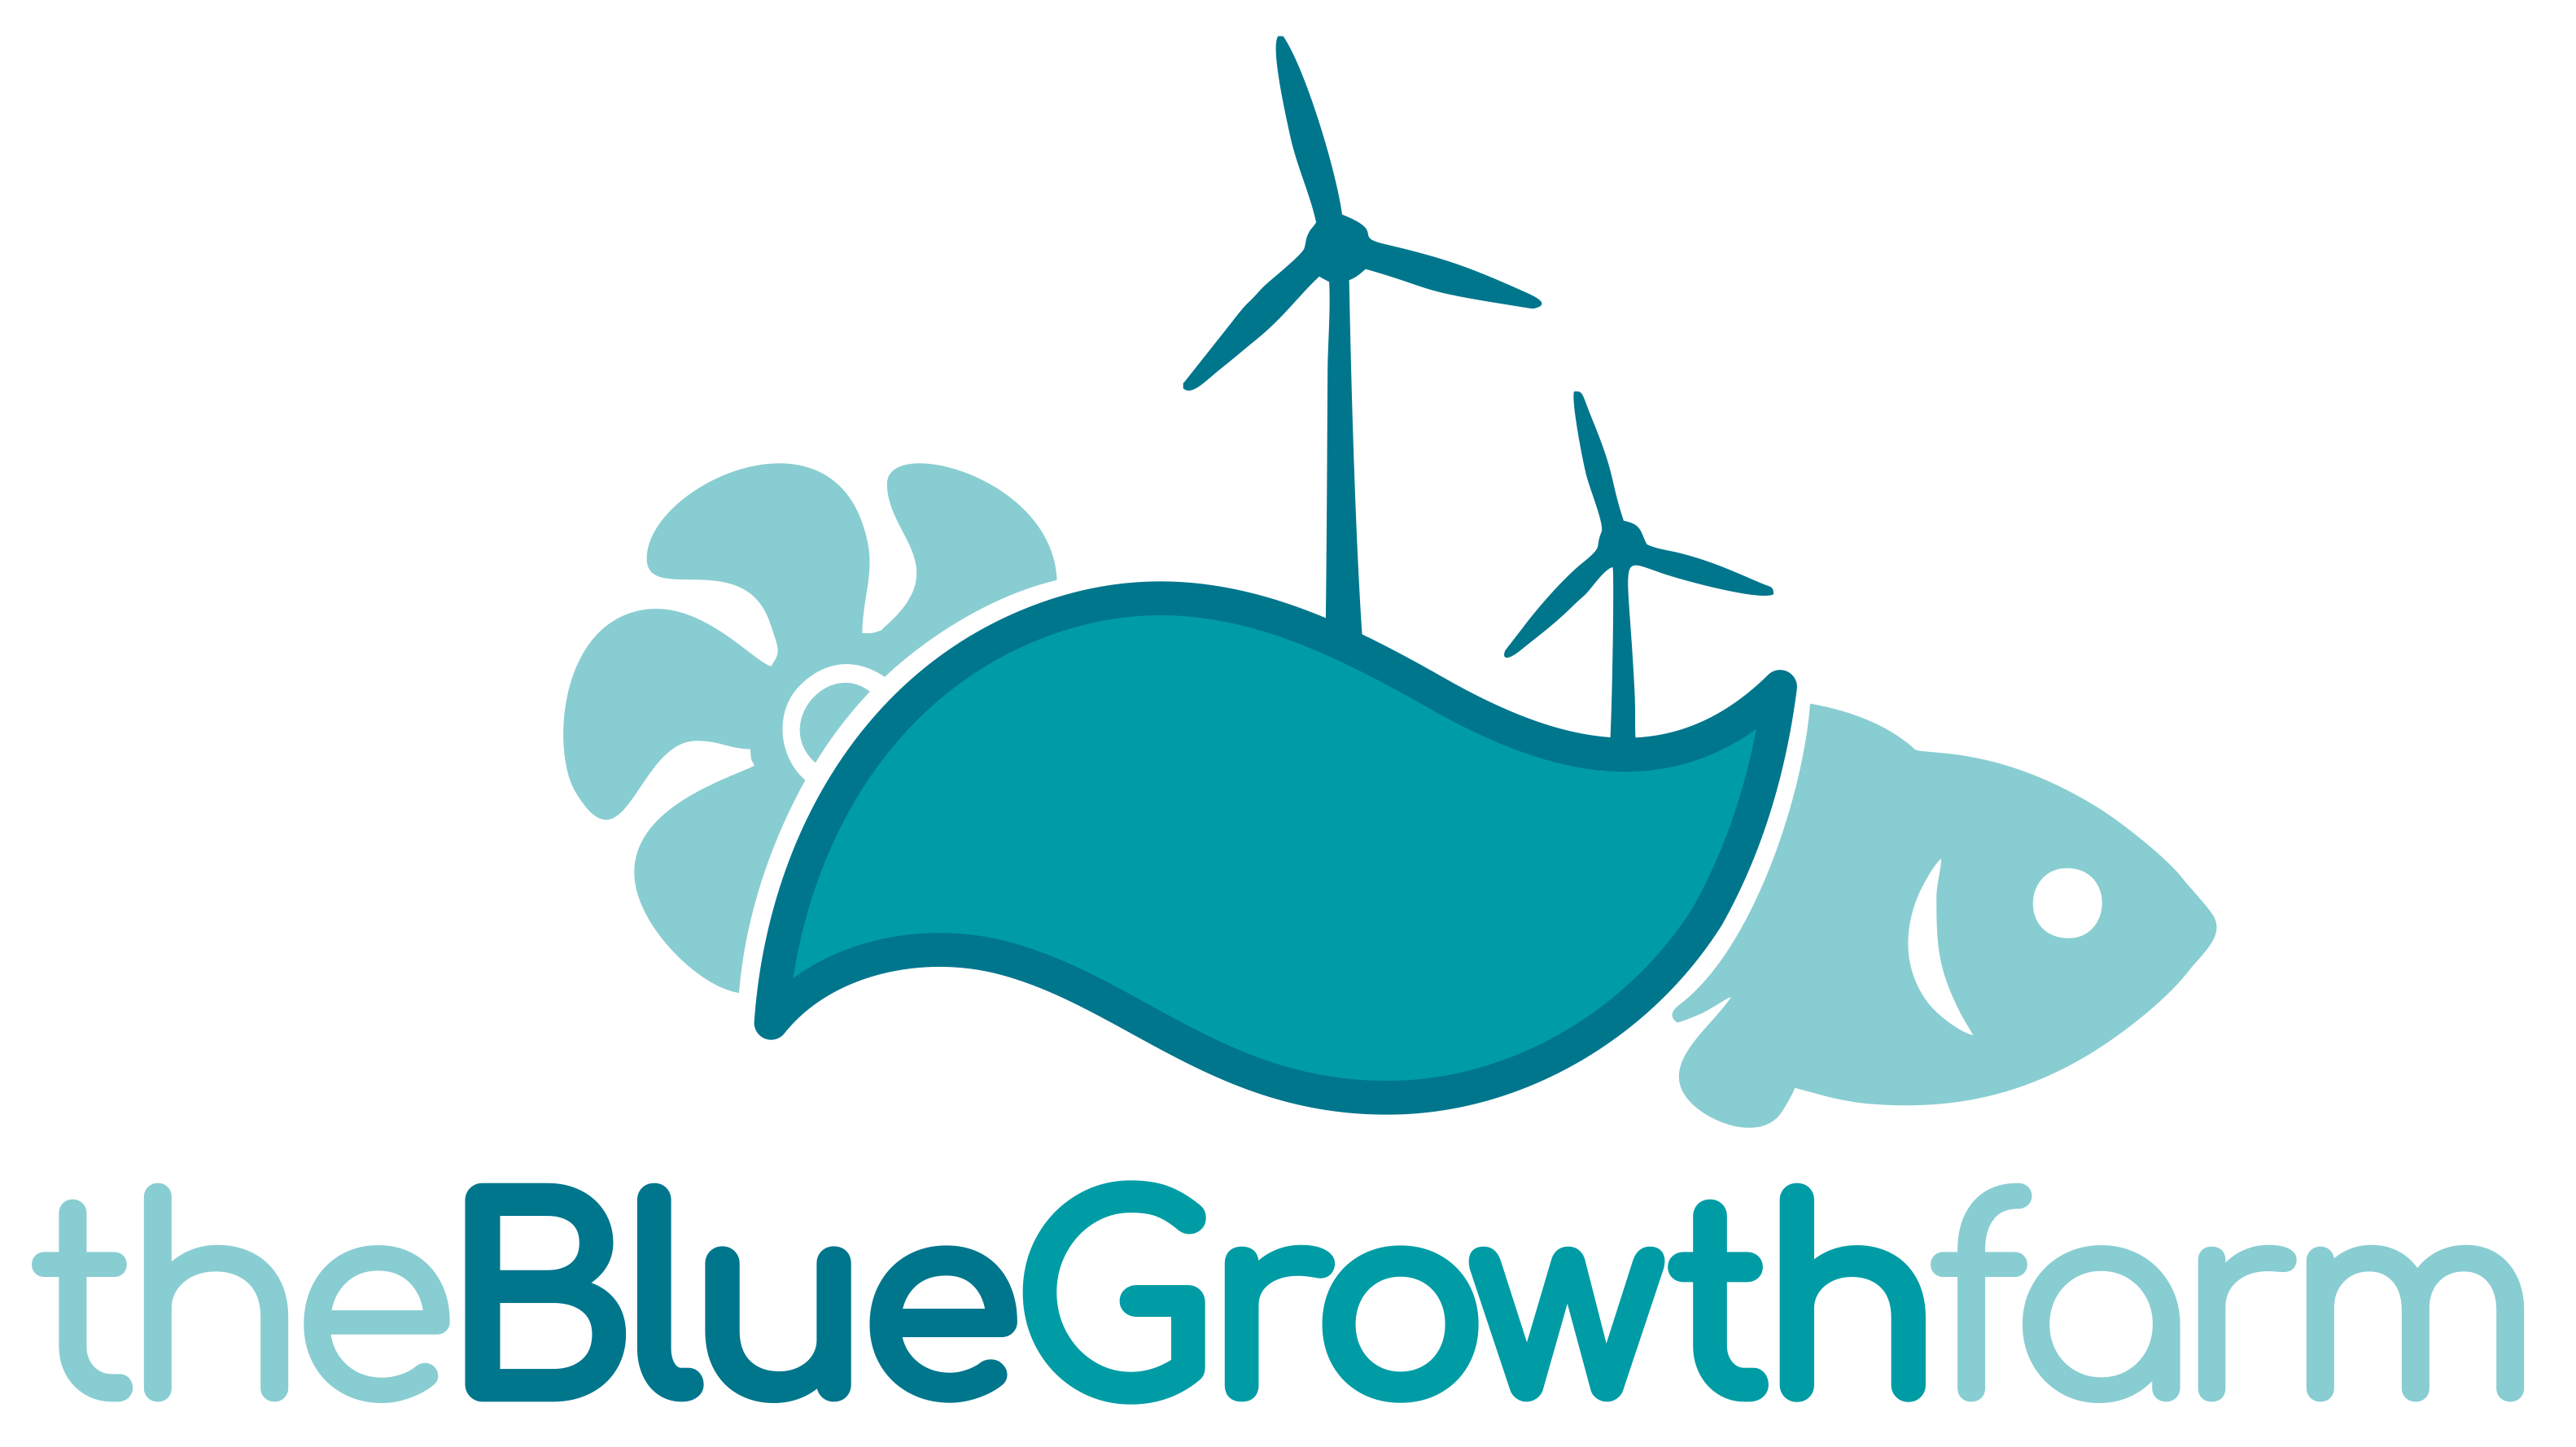 The blue growth farm